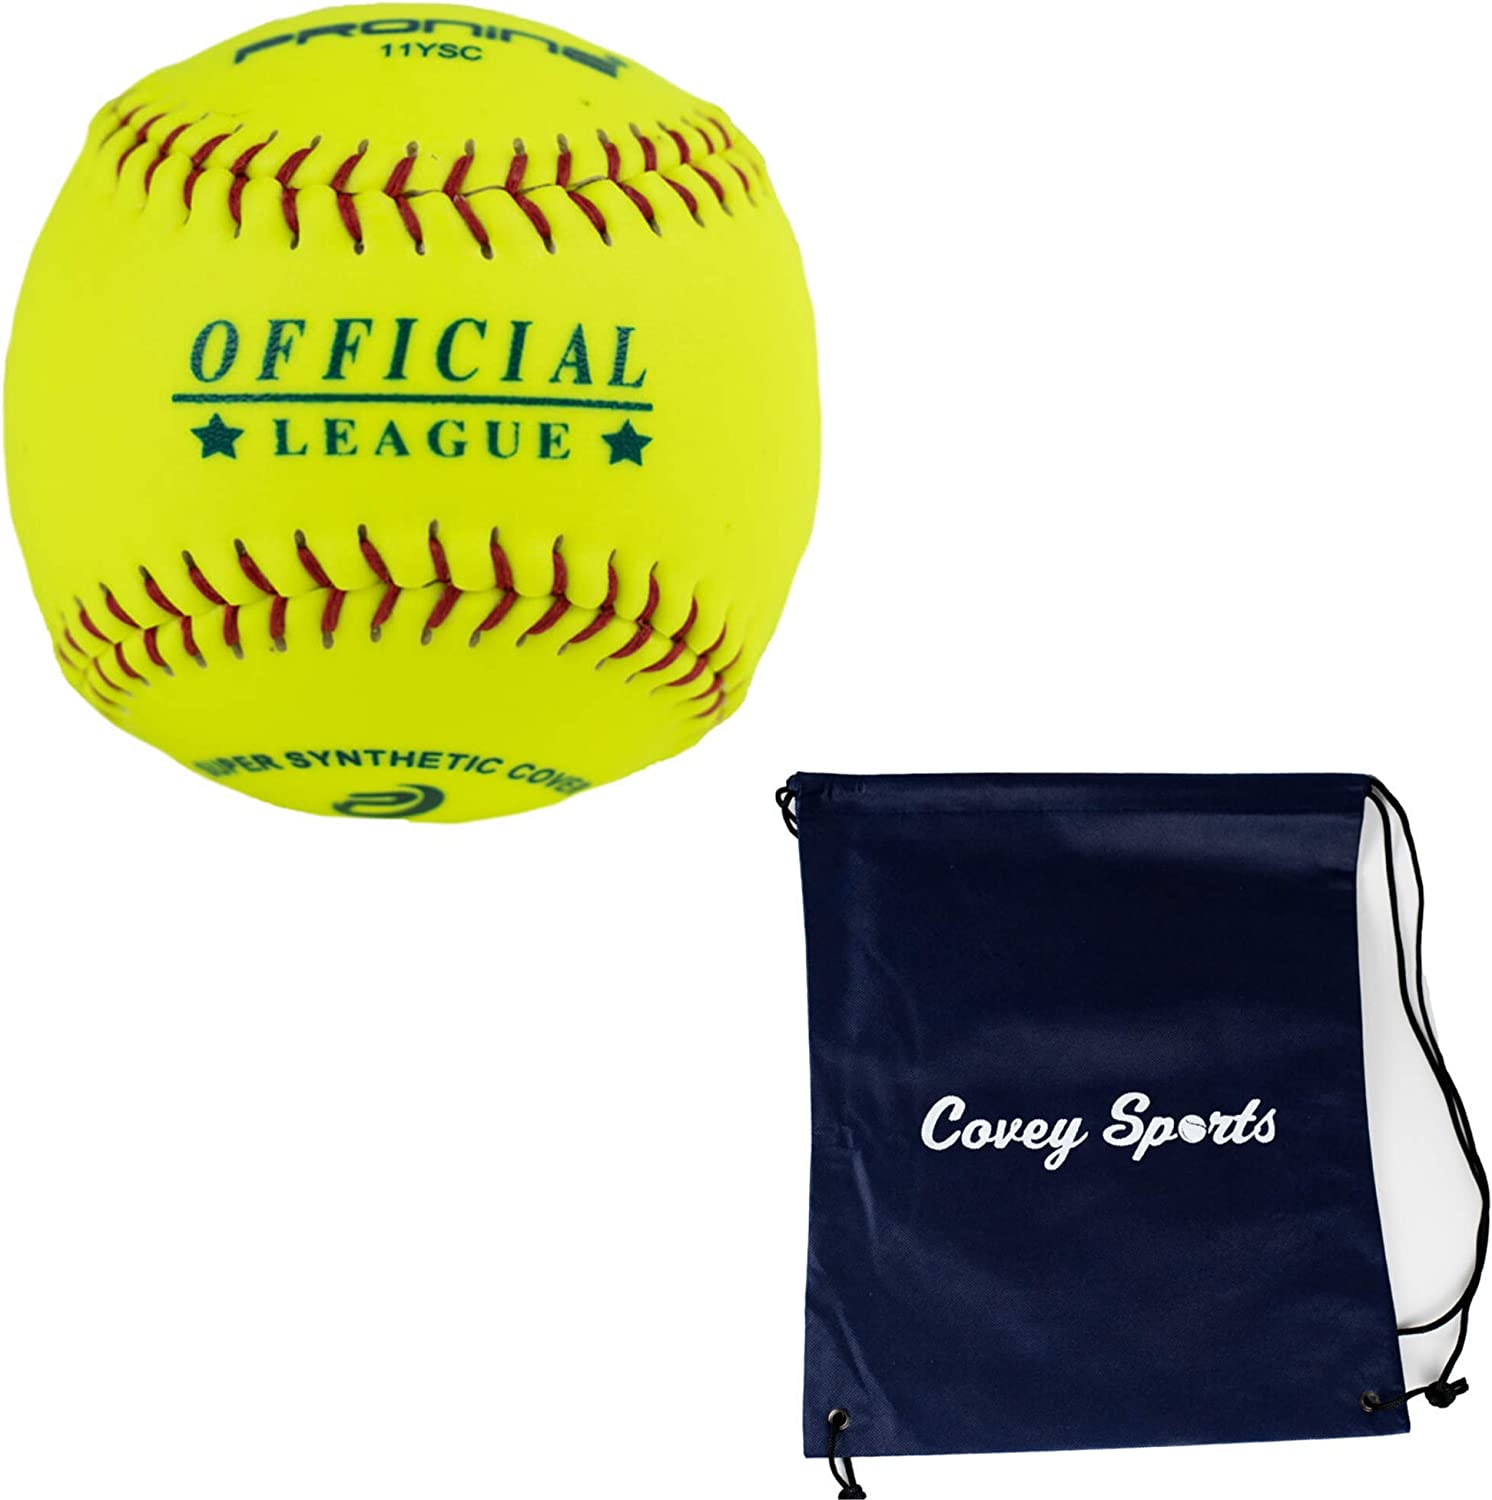 ProNine 11 Inch Soft Core Softball Balls - (Multi-Packs) - 10U Youth Indoor Outdoor Softballs Bundled with Covey Sports Bag